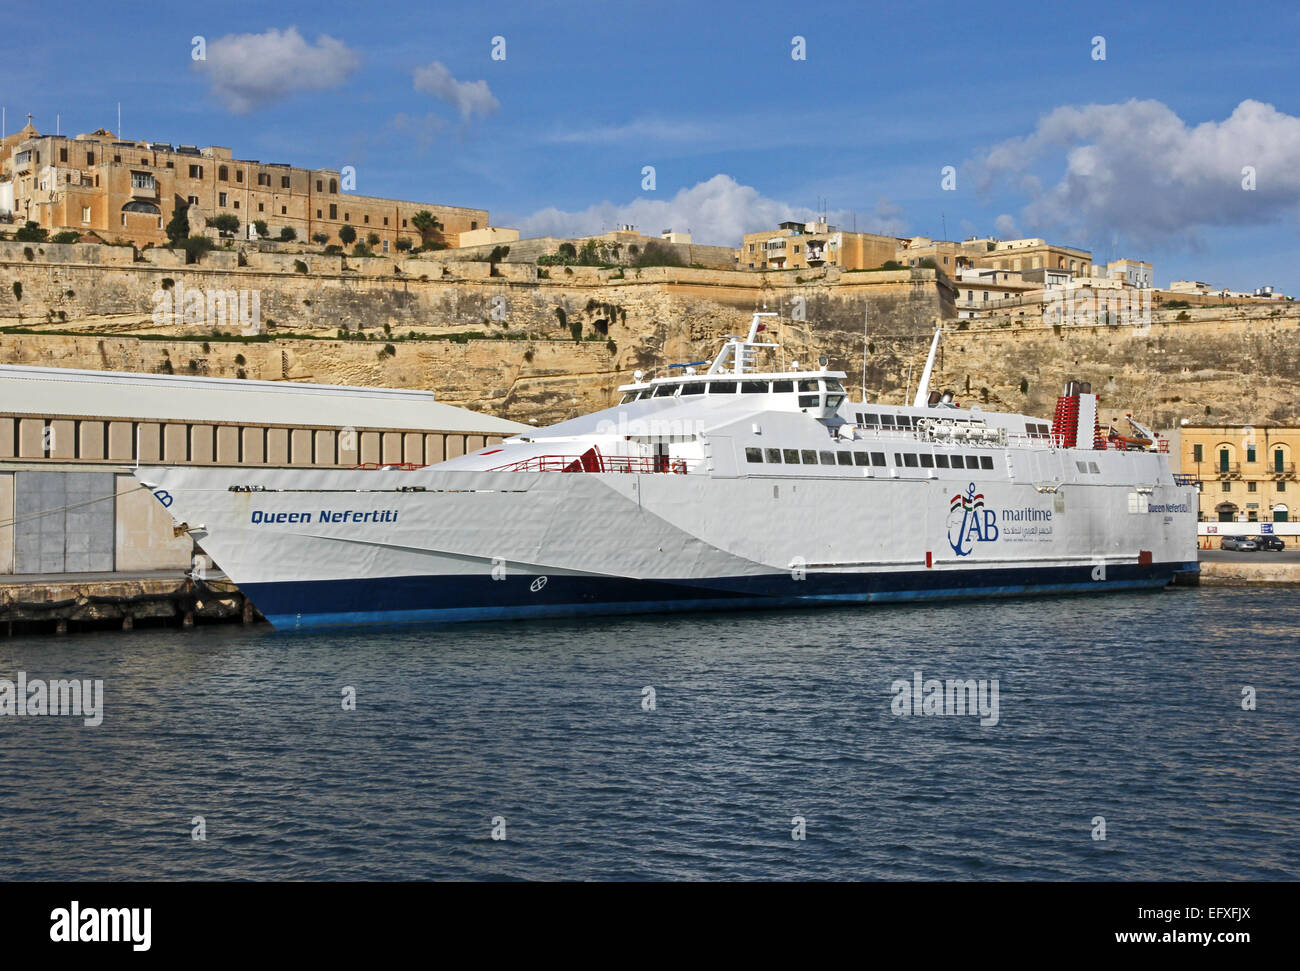 Queen Nefertiti, operated by AB Maritime, moored in Grand Harbour, Valletta, Malta - Stock Image